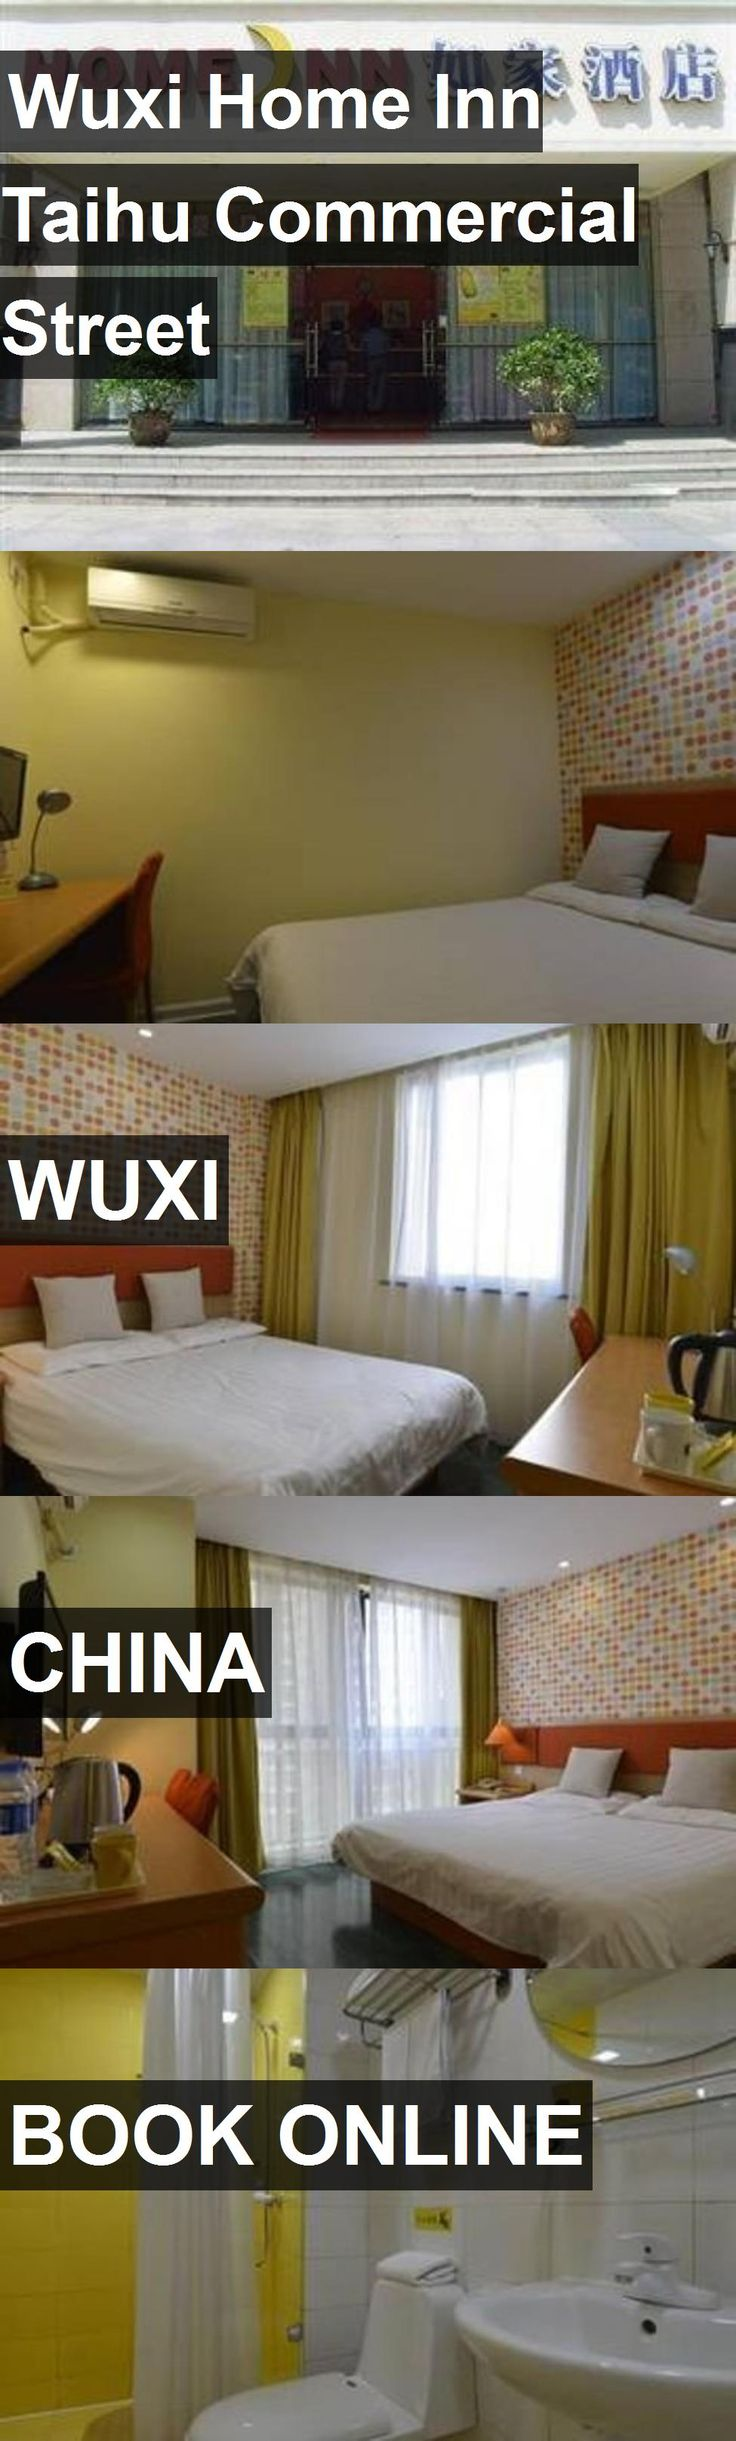 Hotel Wuxi Home Inn Taihu Commercial Street in Wuxi, China. For more information, photos, reviews and best prices please follow the link. #China #Wuxi #travel #vacation #hotel